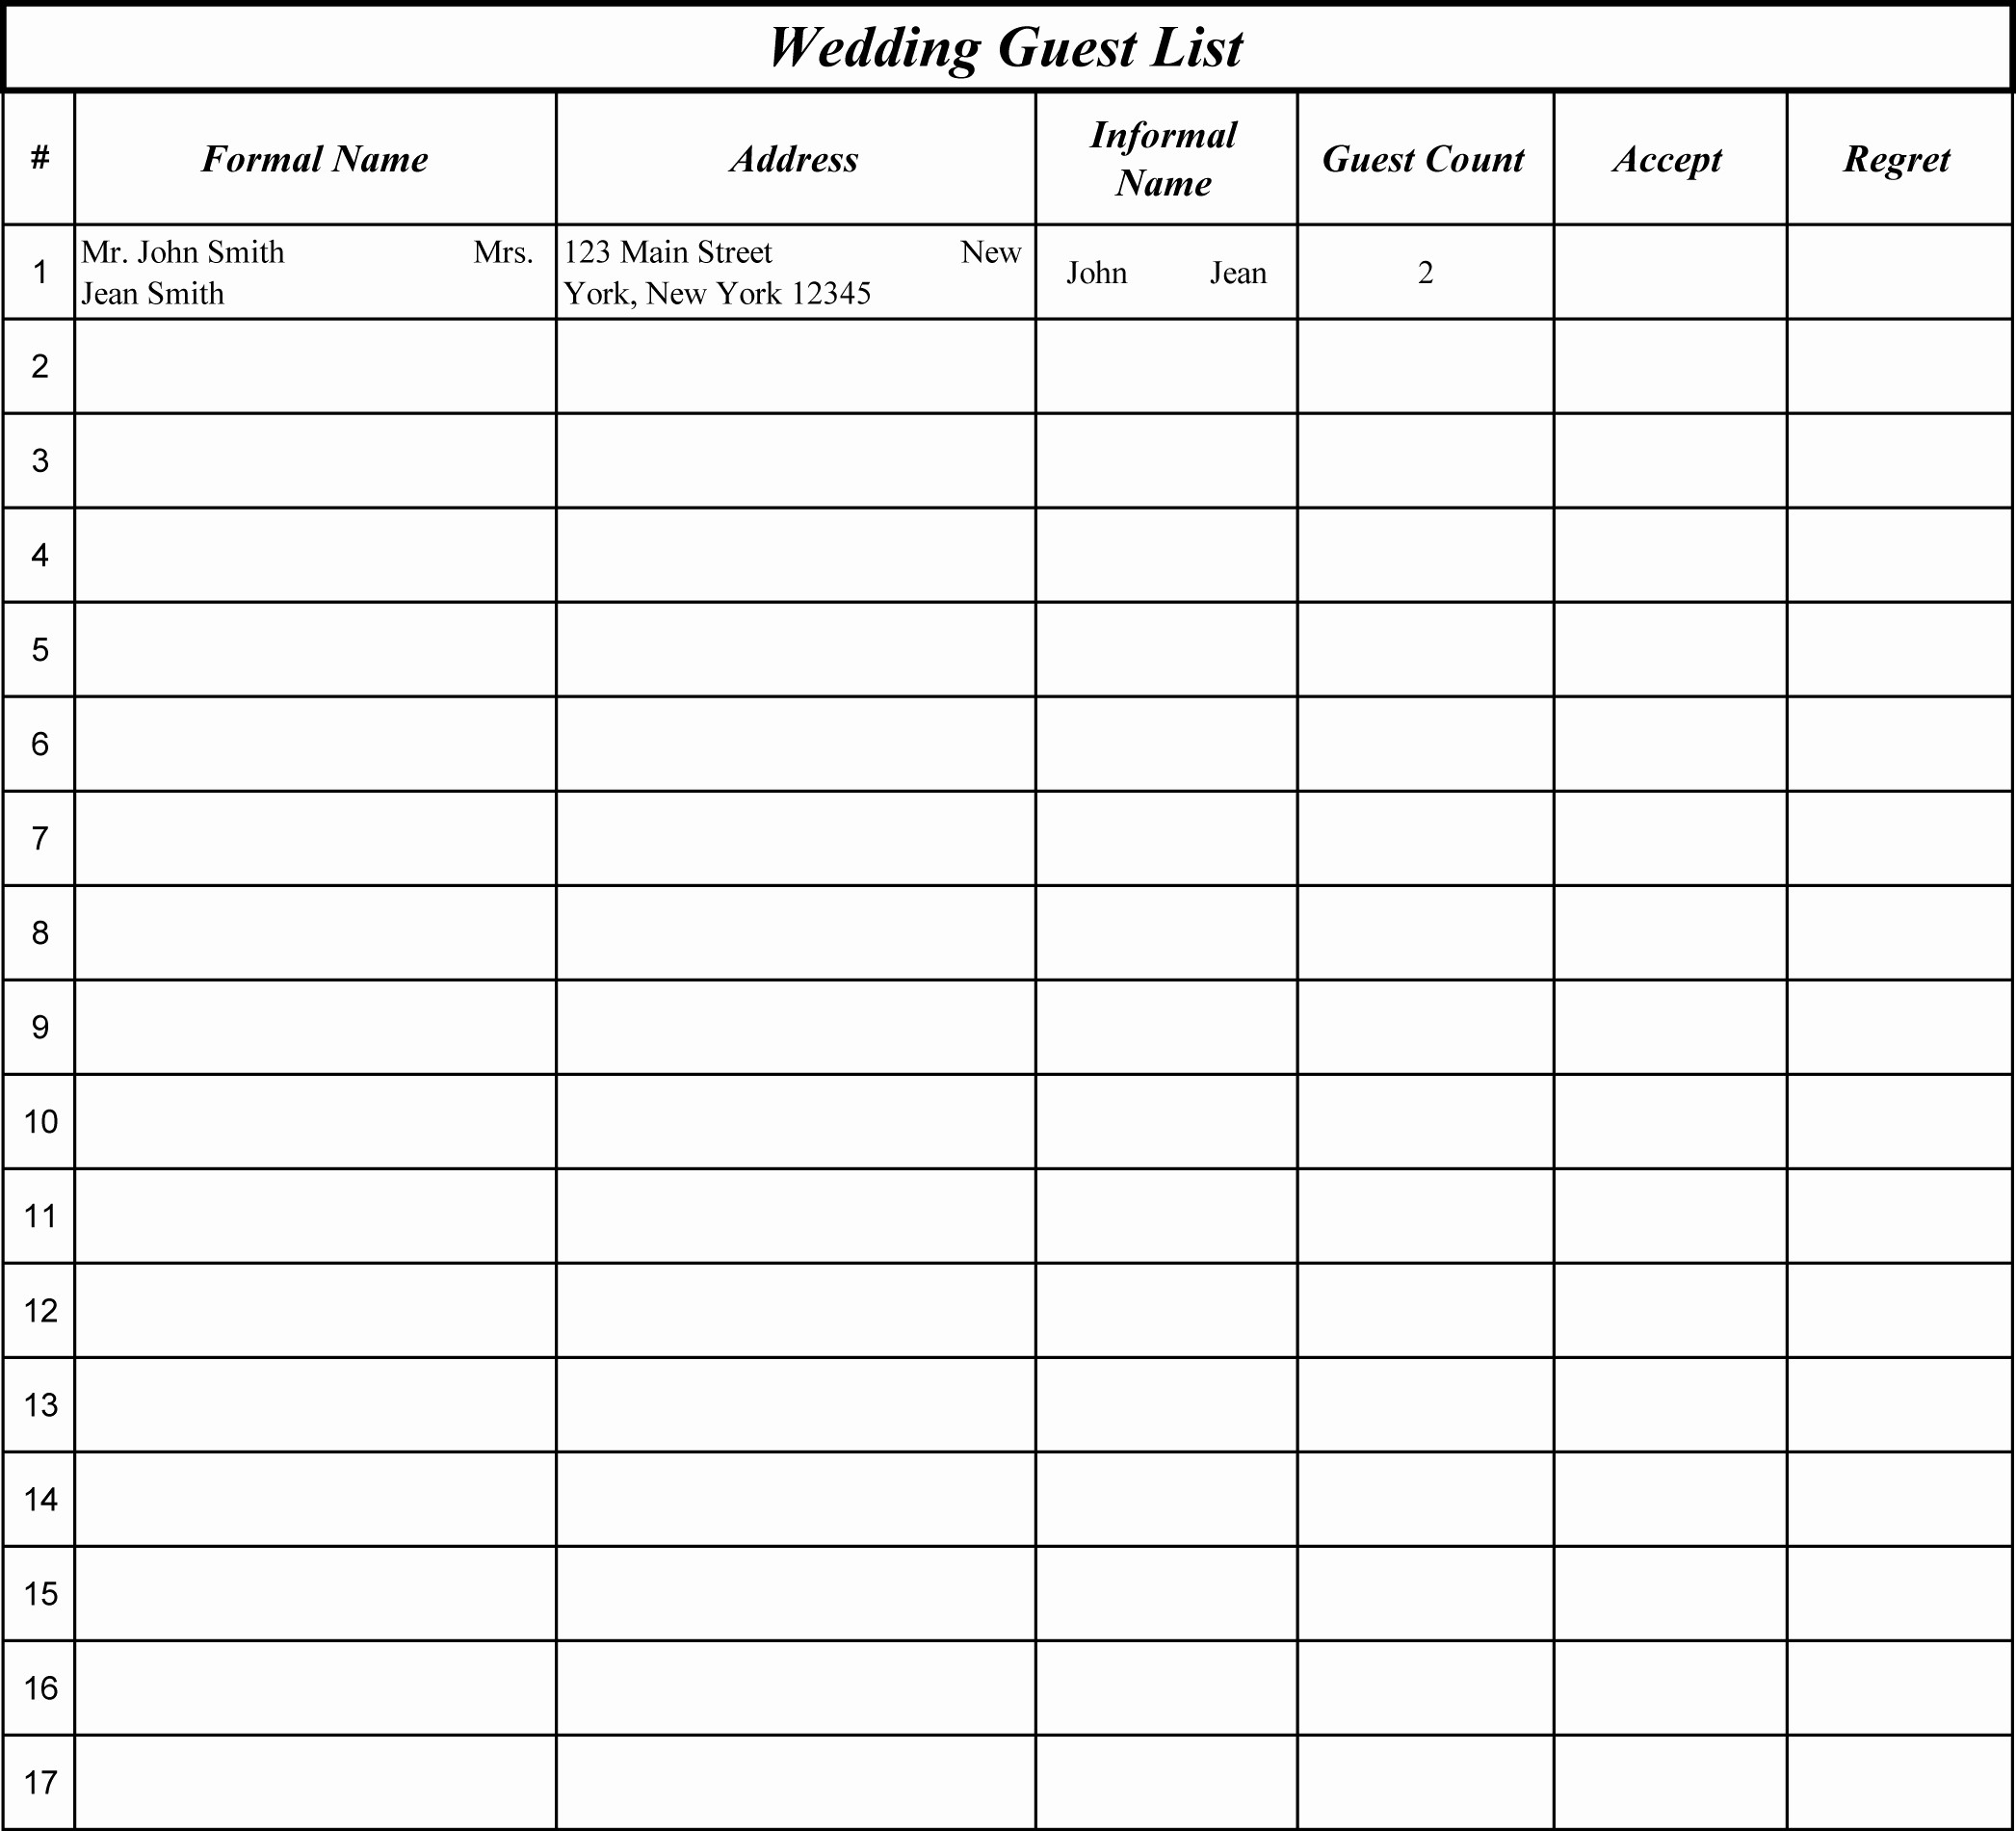 Wedding Guest List Spreadsheet Template Unique 15 Best Of Wedding Guest List Worksheets